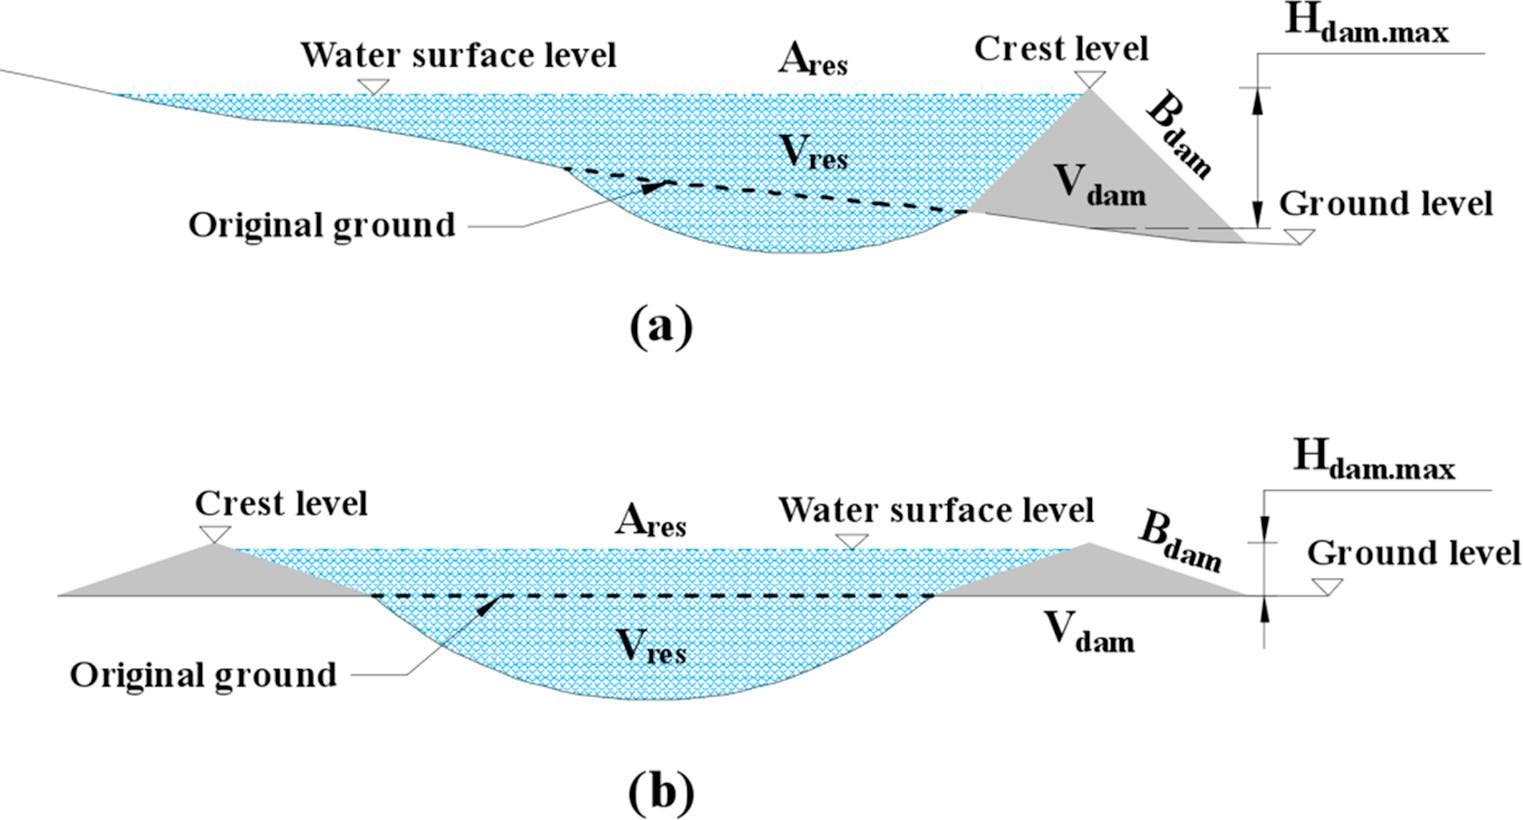 Cross sections of two pumped hydro reservoir approaches